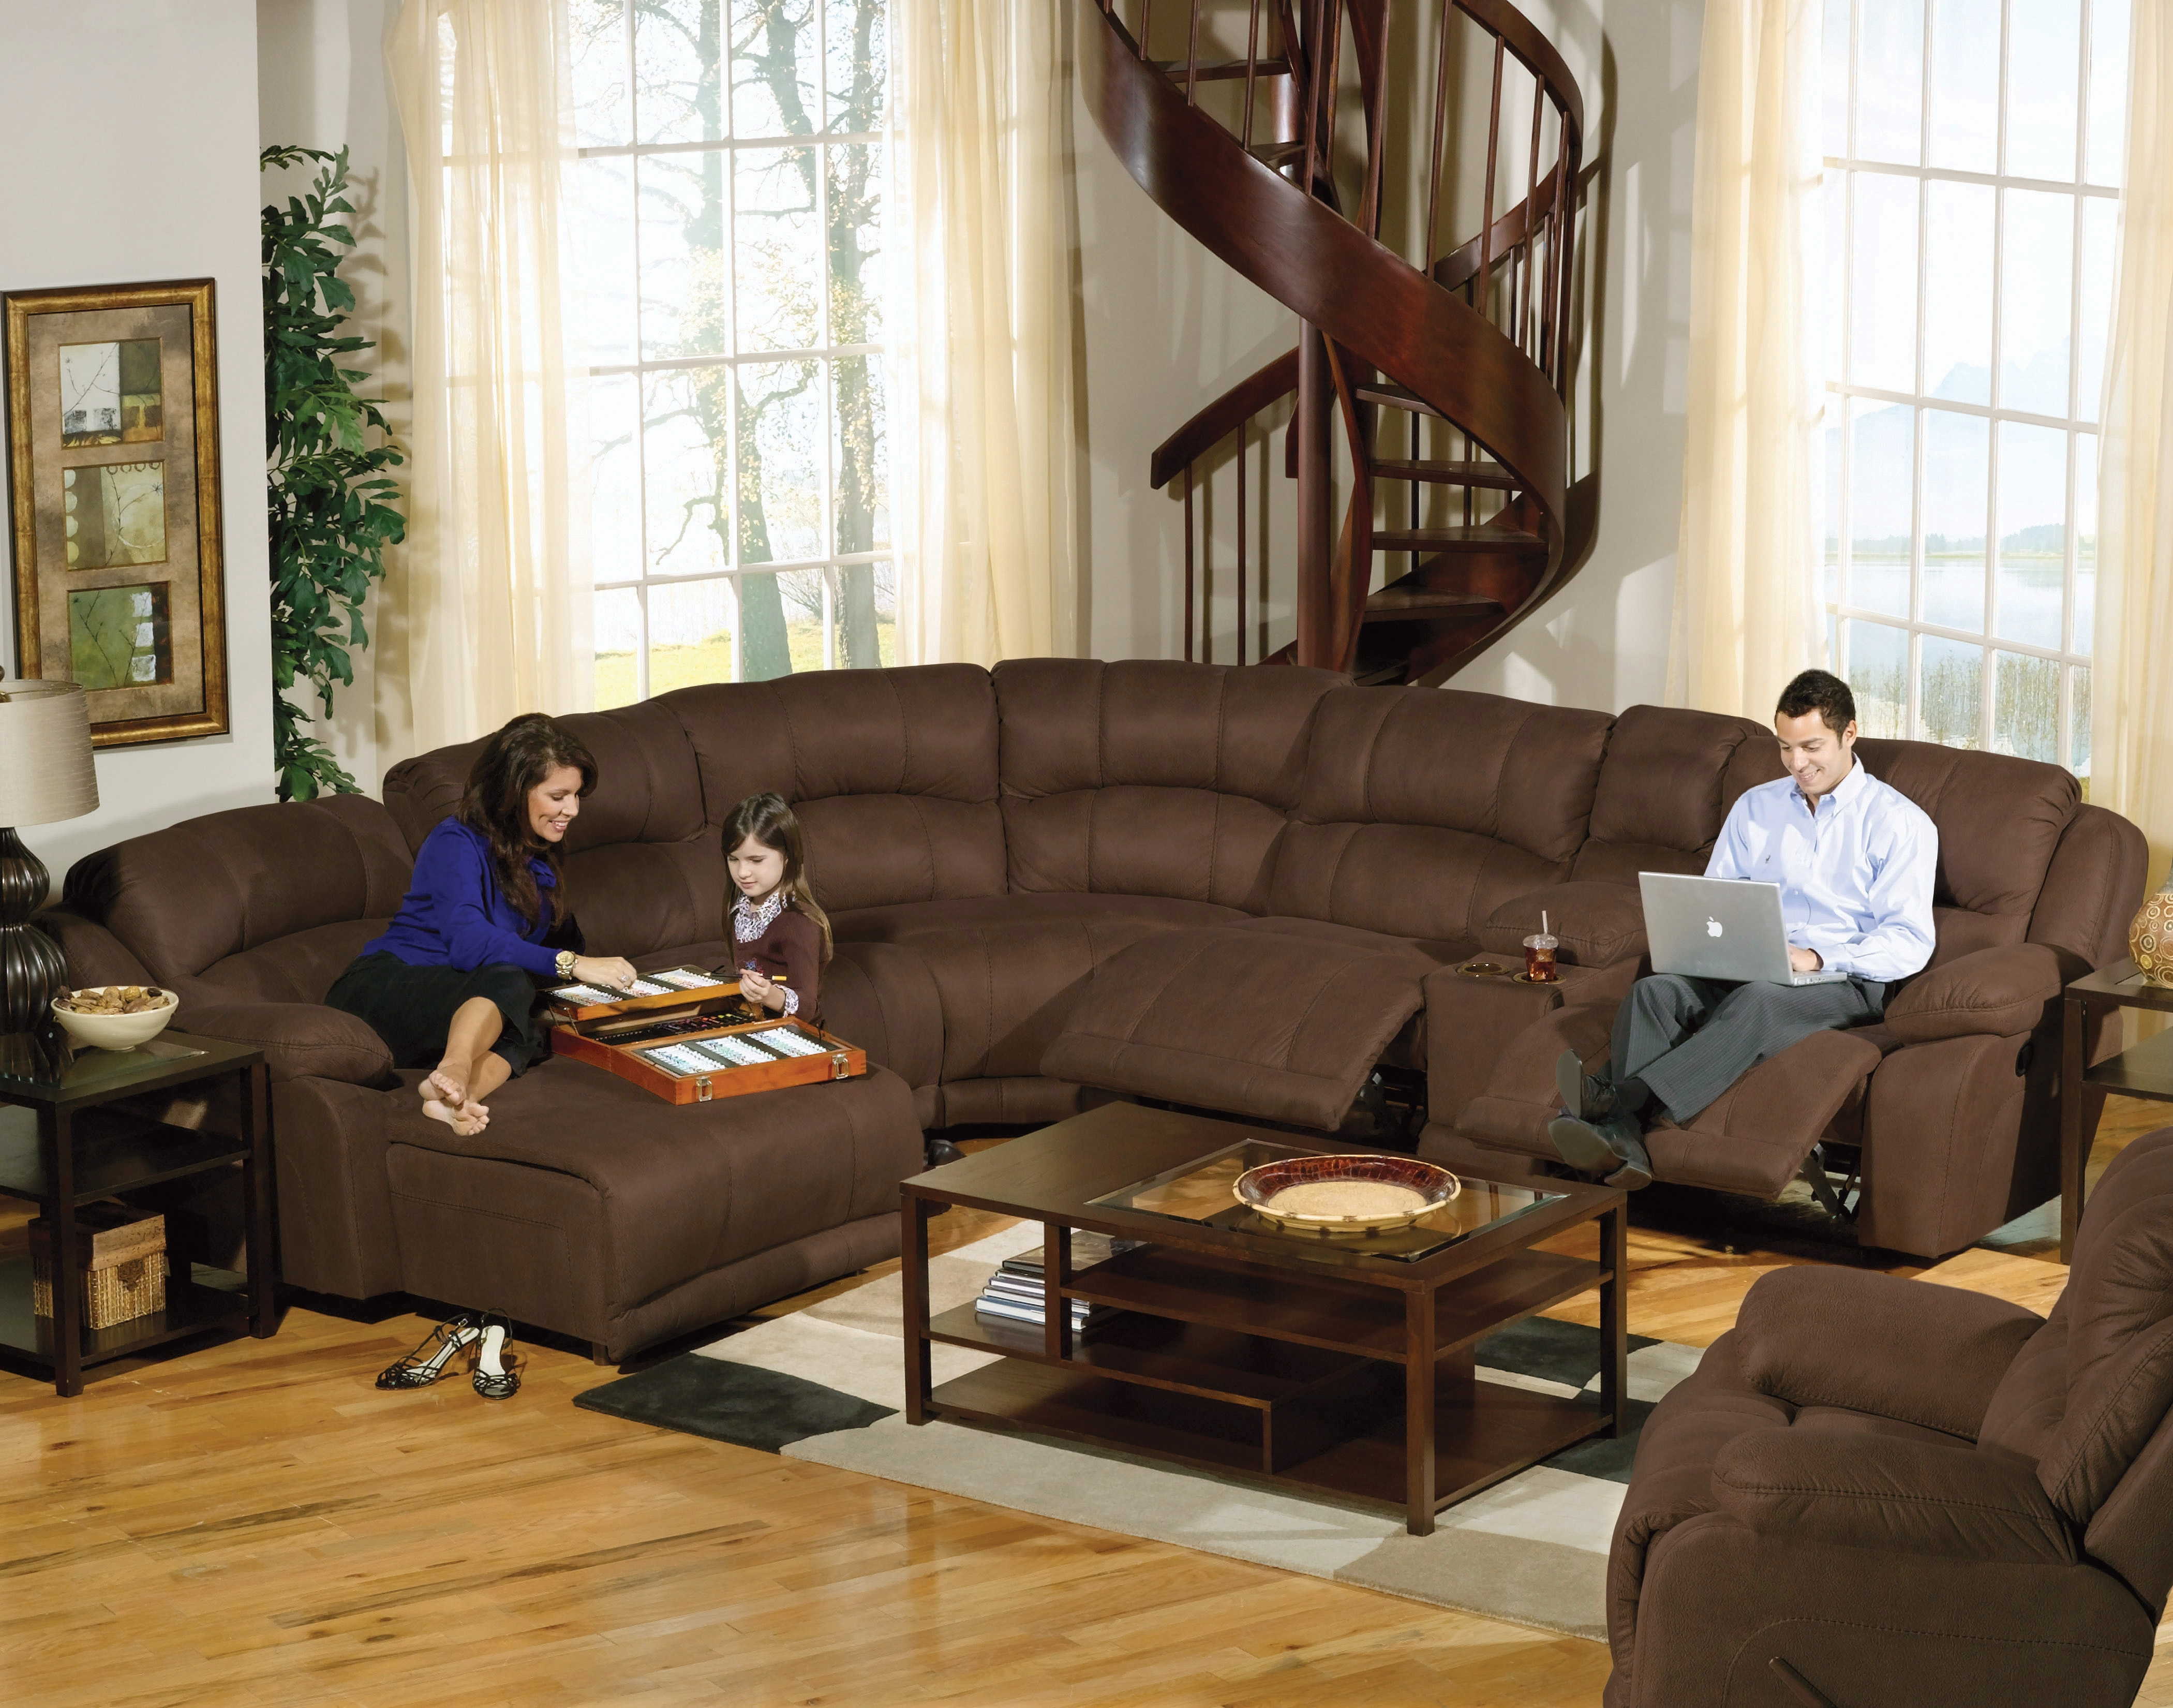 Cheap Sectional Sofas Movie Pit Couch Oversized Sofas Extra Large Regarding Most Recently Released Extra Large Sectional Sofas With Chaise (View 5 of 15)